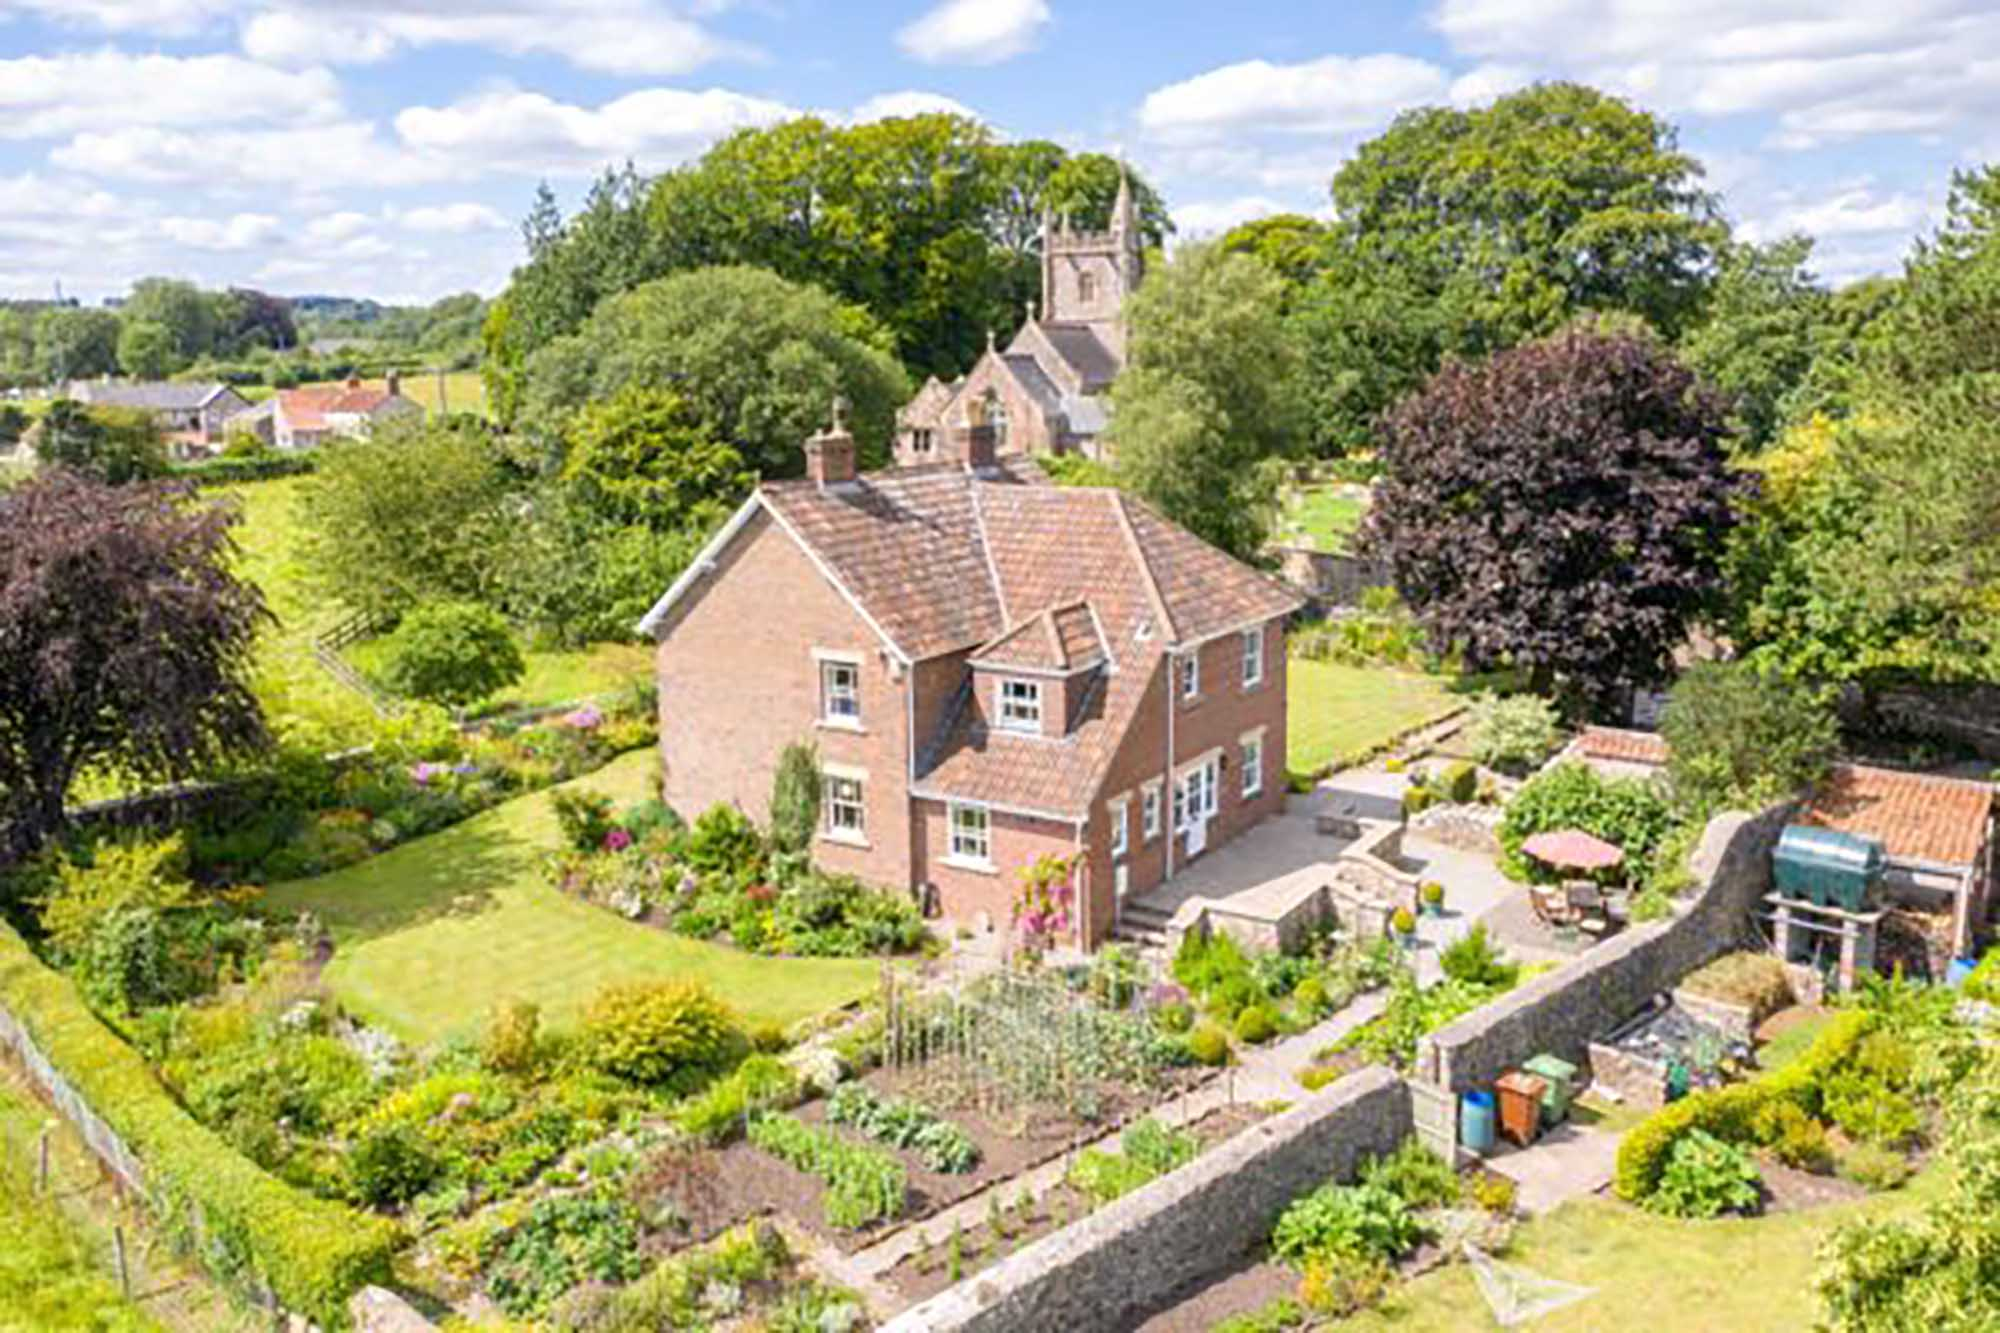 Idyllic location, views, amazing garden in Ashwick, Oakhill